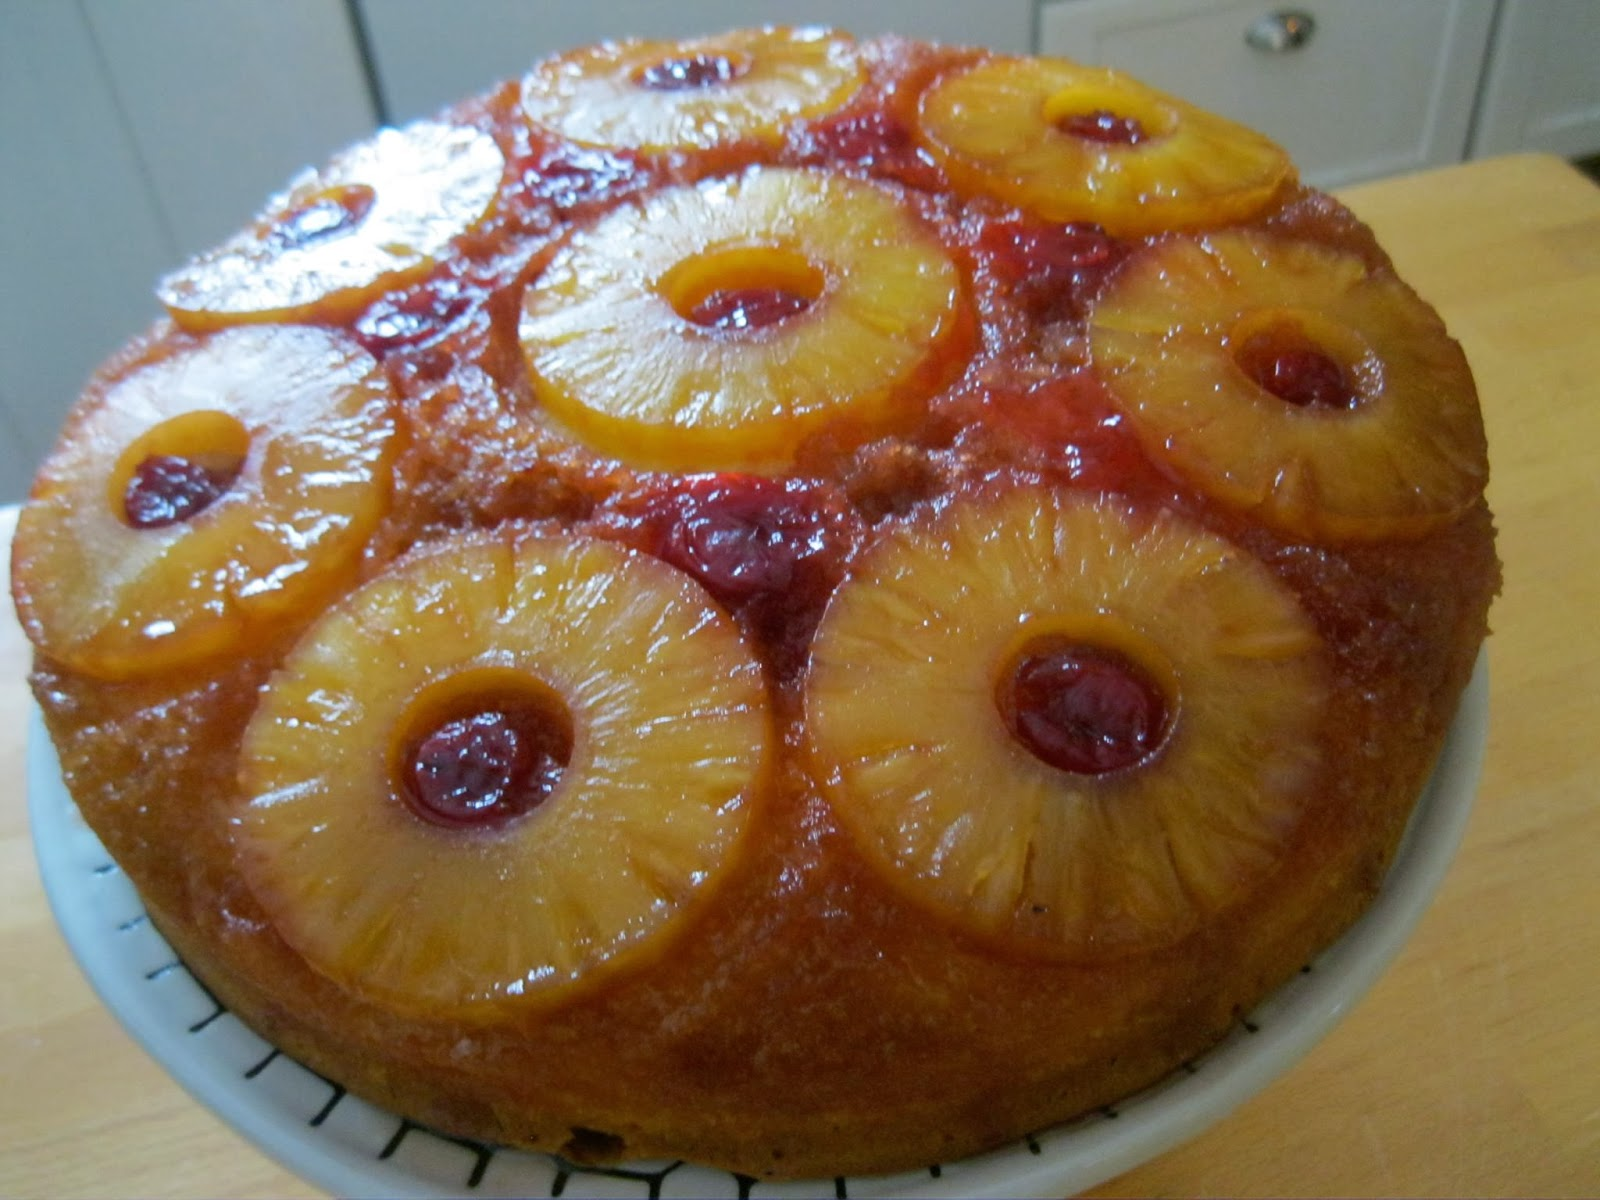 Adirondack Baker: EASY Pineapple Upside Down Cake!